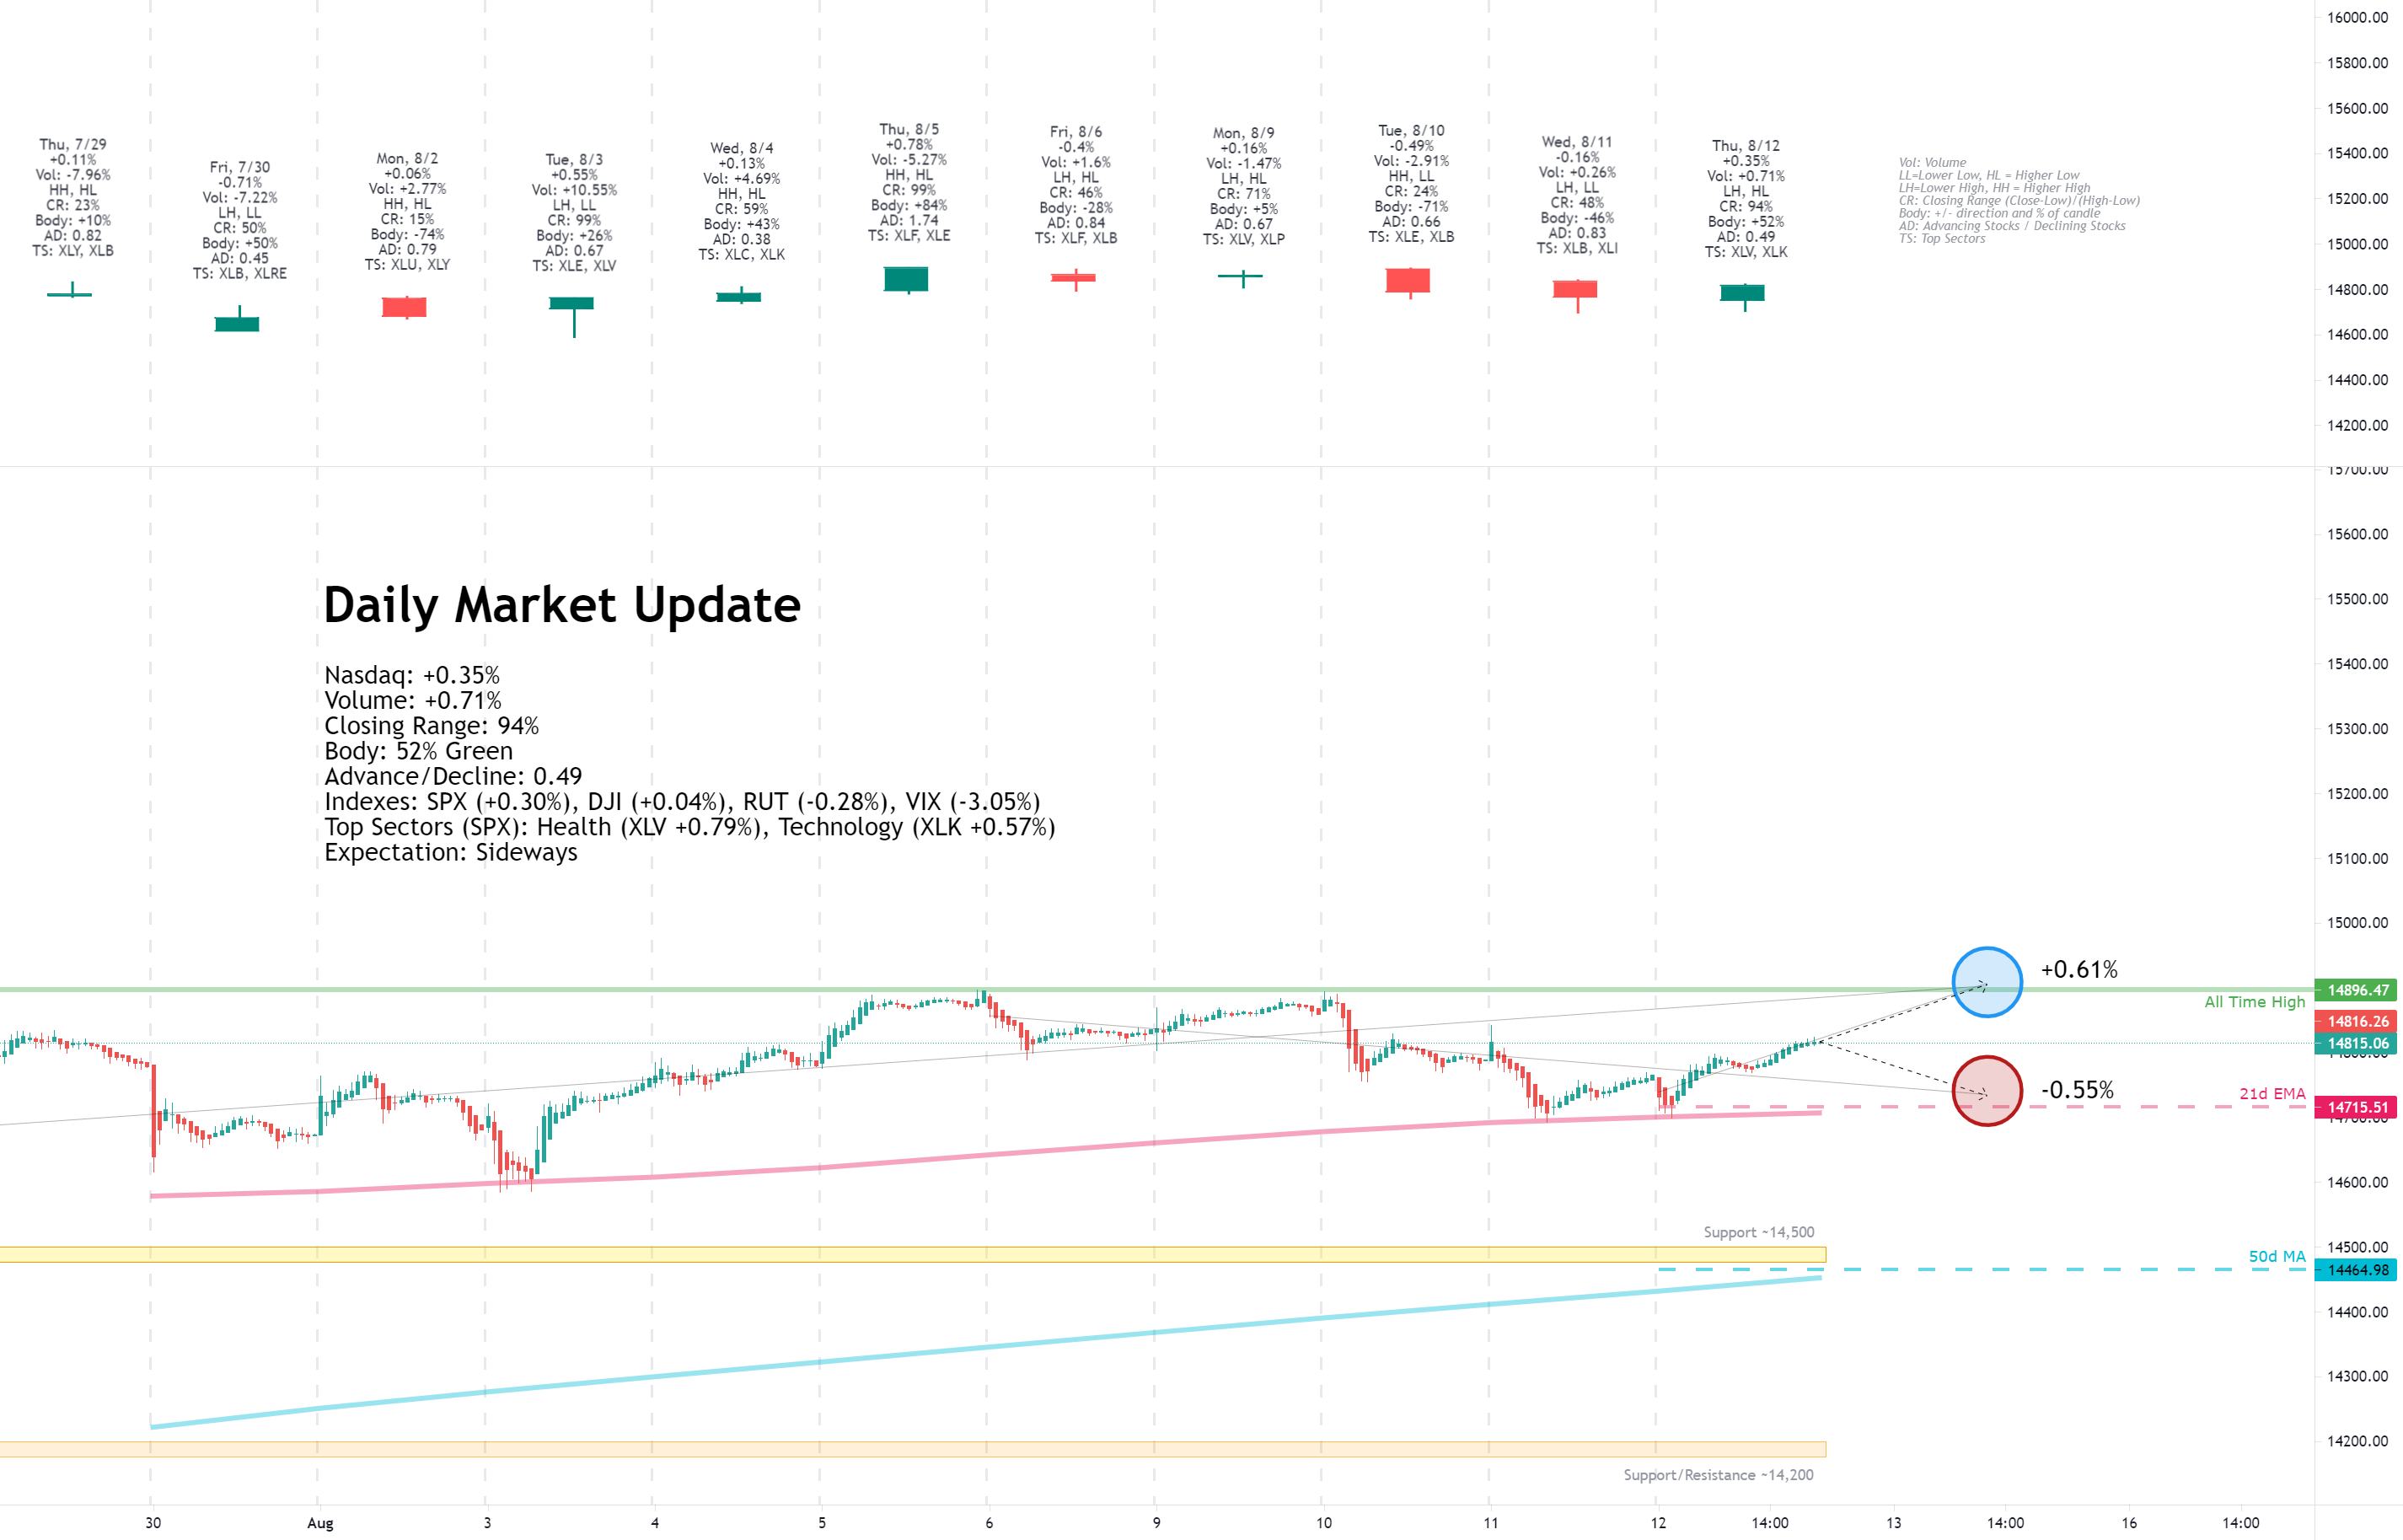 Daily Market Update for 8/12